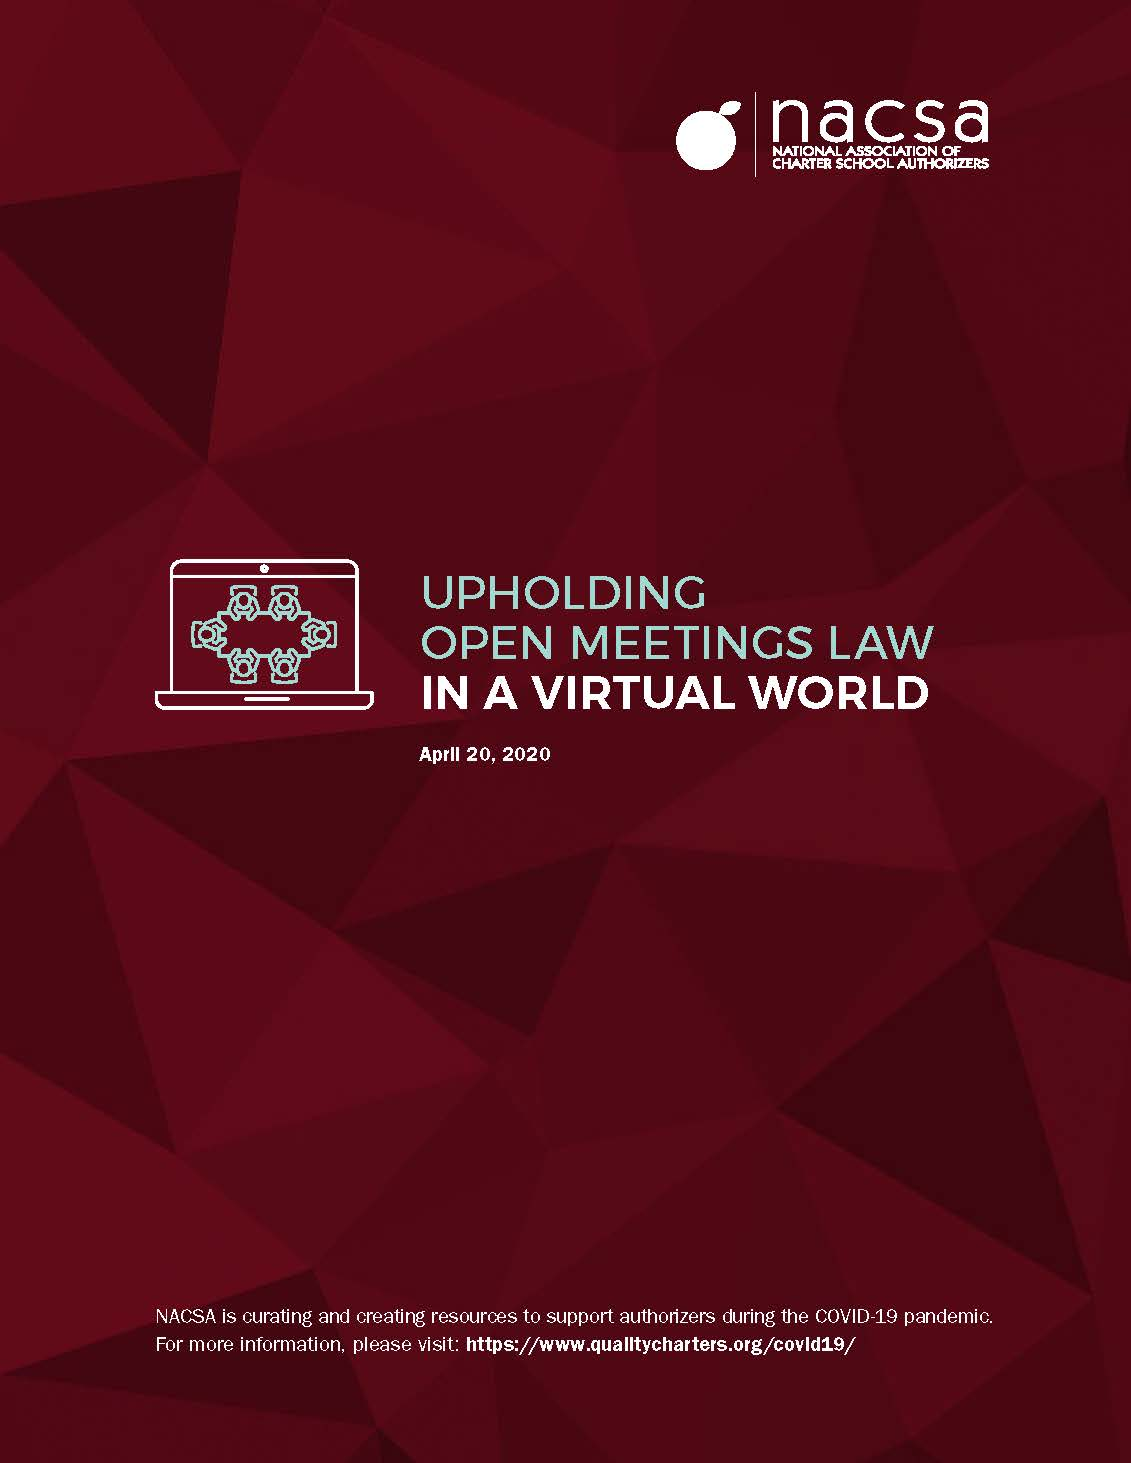 Upholding Open Meetings Law in a Virtual World